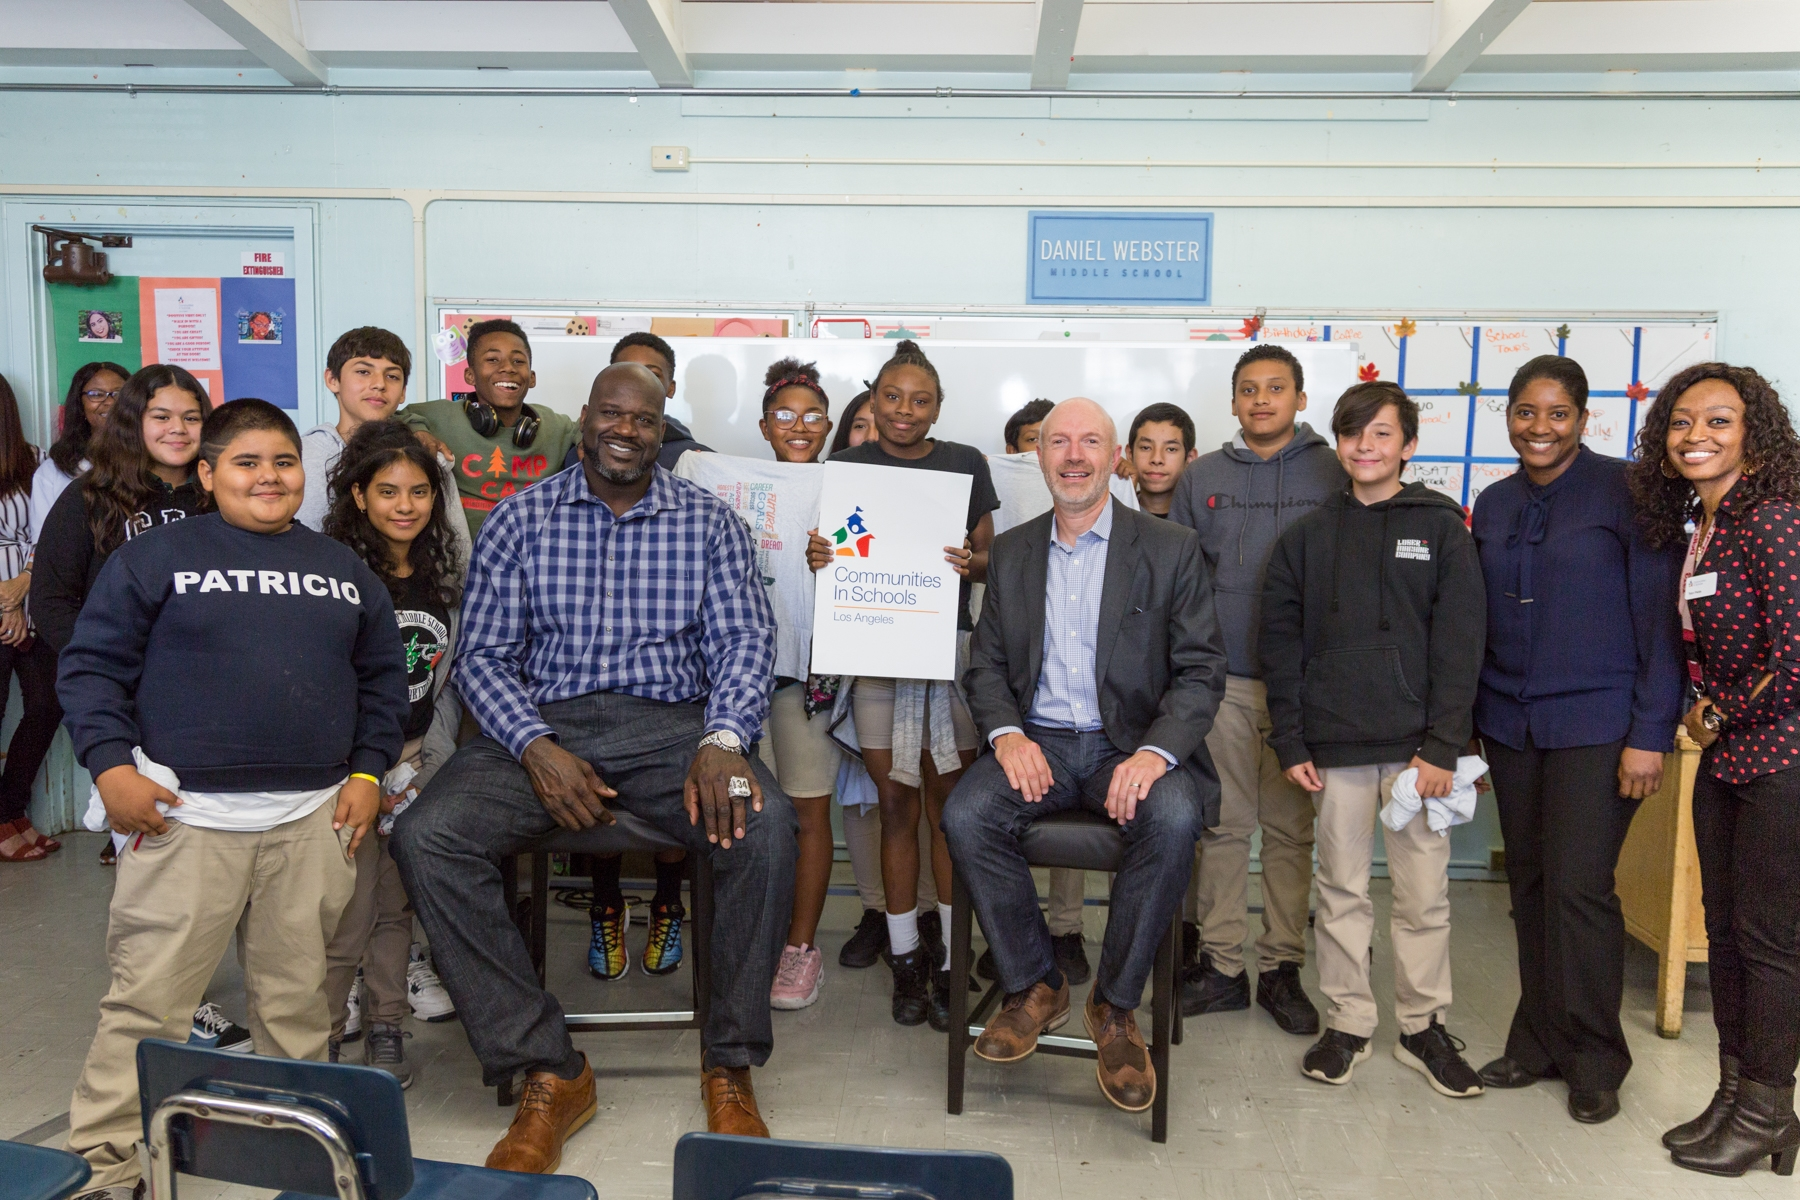 Shaquille ONeal and Keith Kratzberg with Daniel Webster Middle School Students_CISLA Event 20191011_201910141758